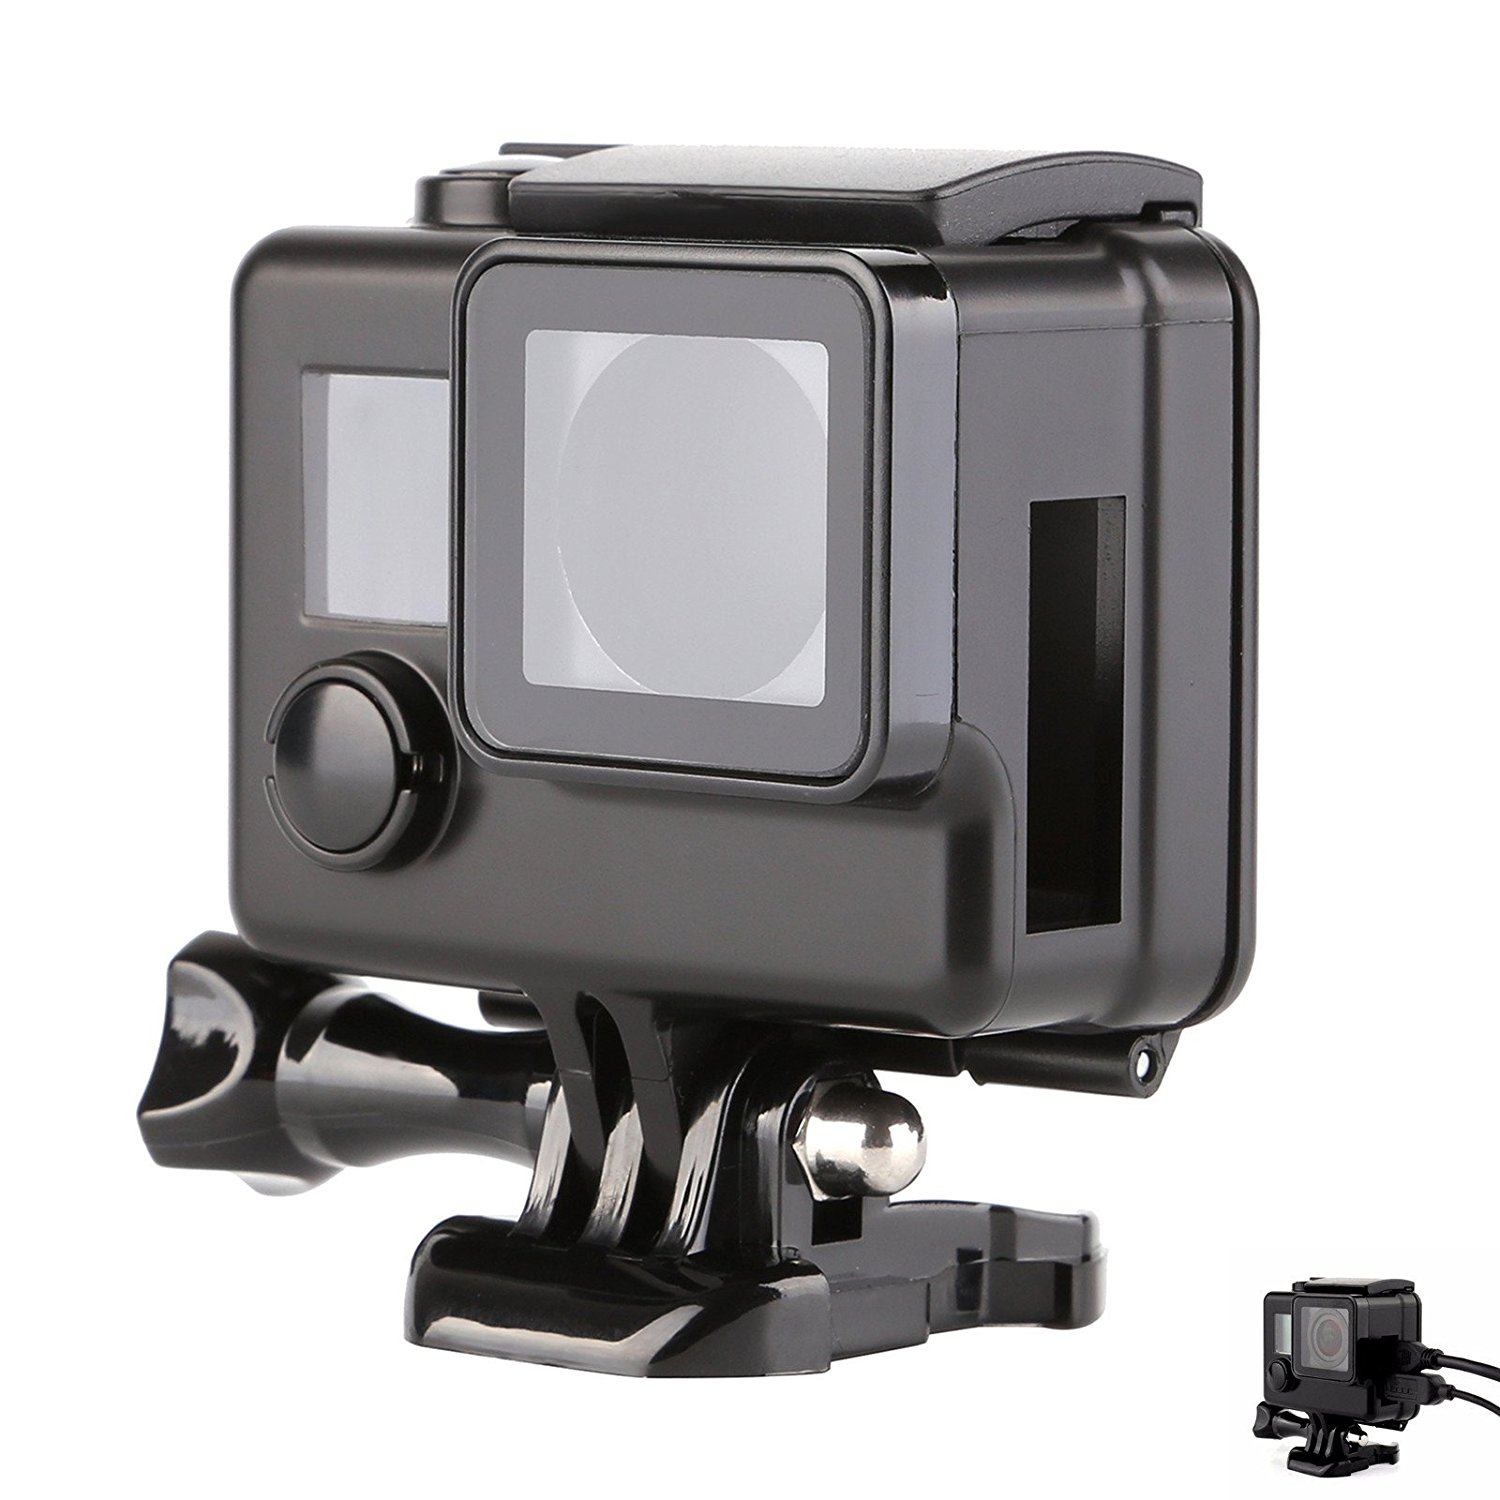 GoPro filming continuously for 5 hours solution